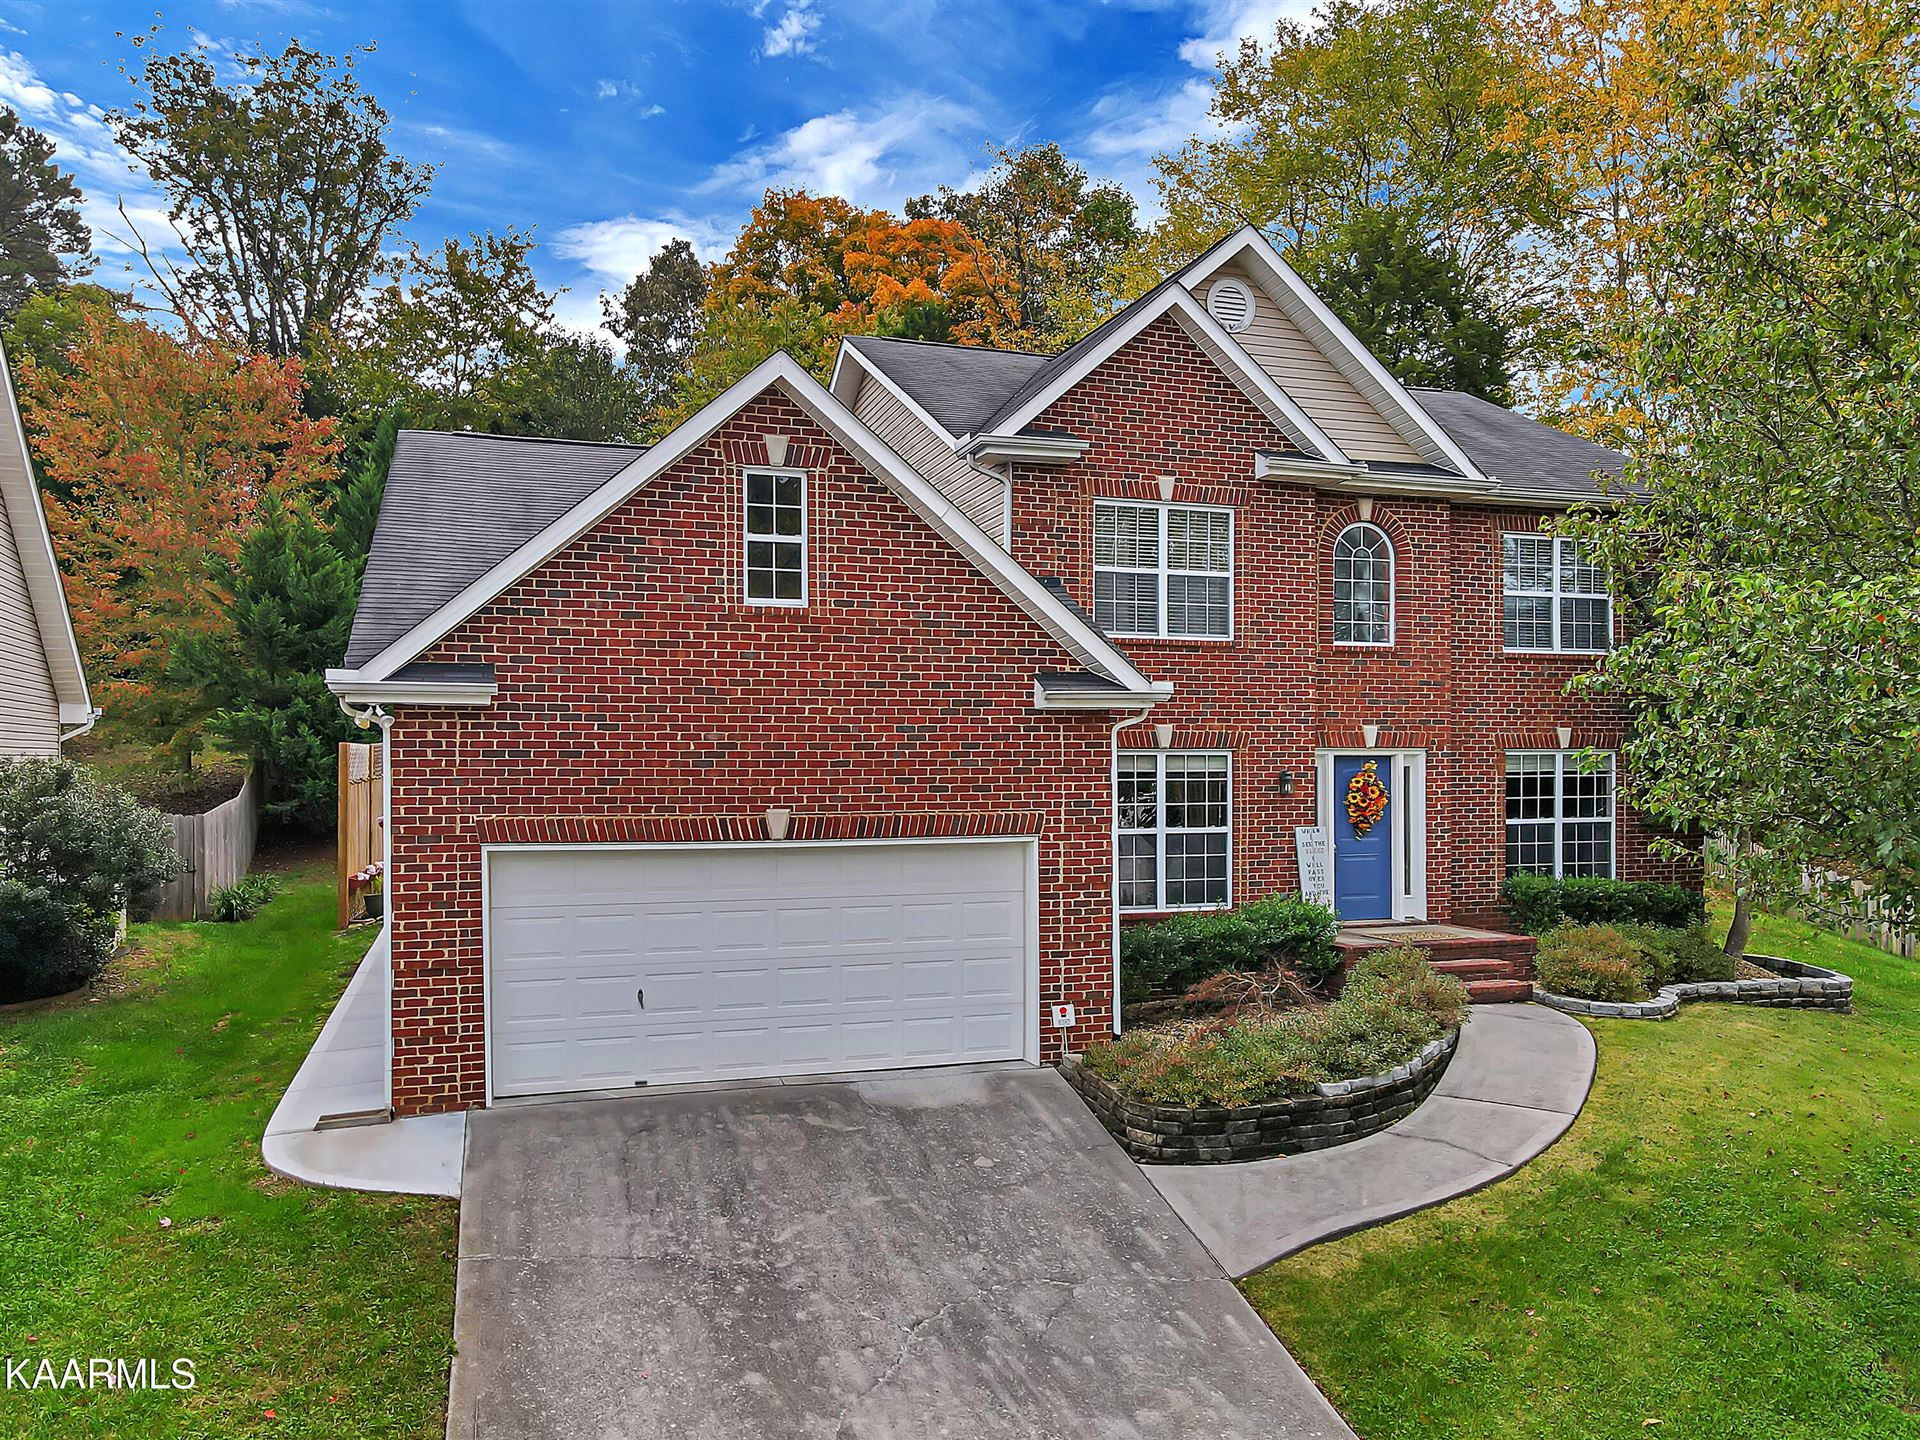 Photo of 3108 Gose Cove Lane, Knoxville, TN 37931 (MLS # 1171793)